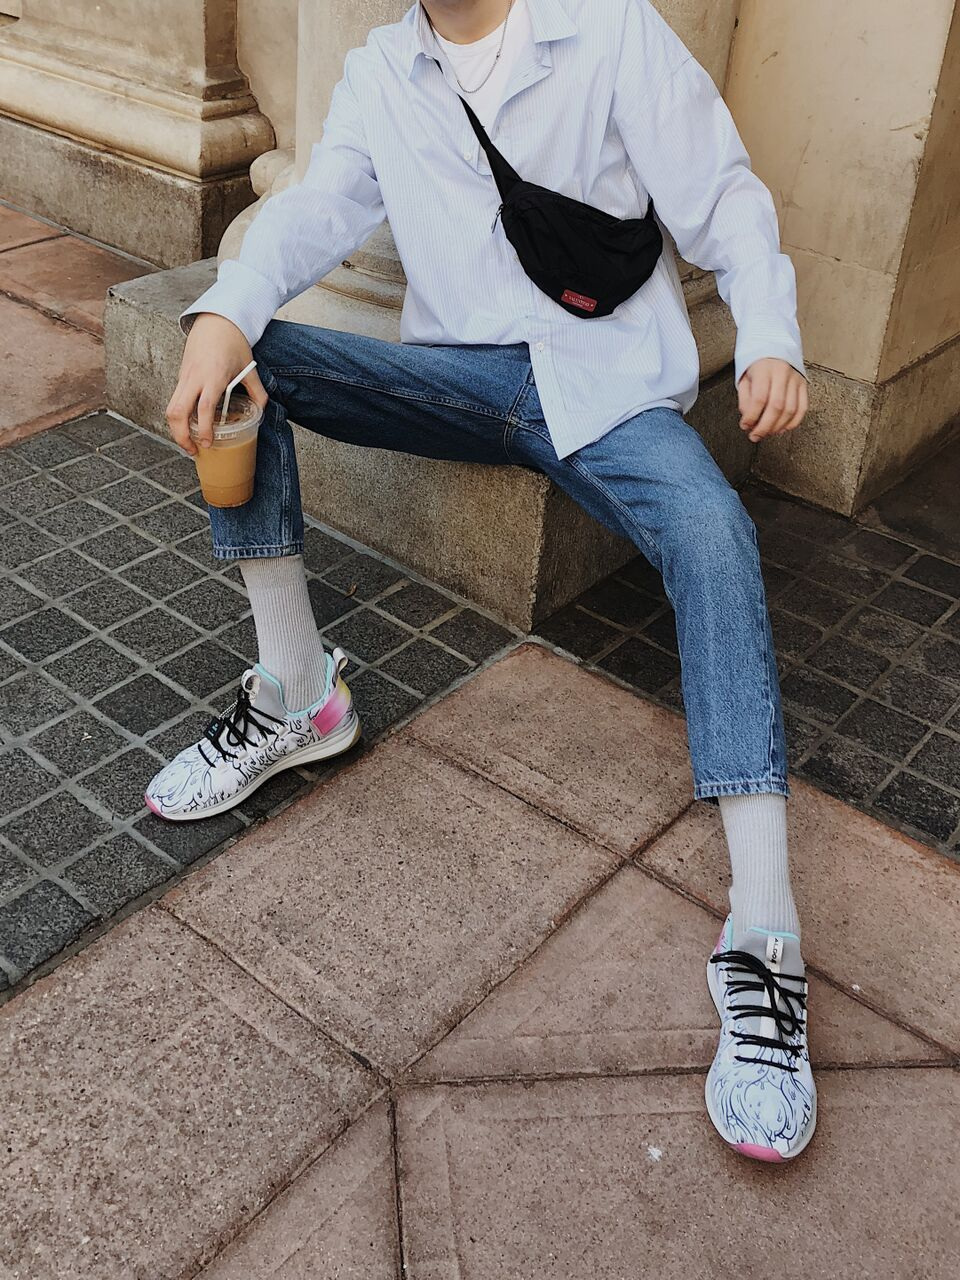 7e671159414 Aldo's limited edition Mx3 collaboration with Buff Monster is the perfect  sneaker to show off your effortlessly cool street style